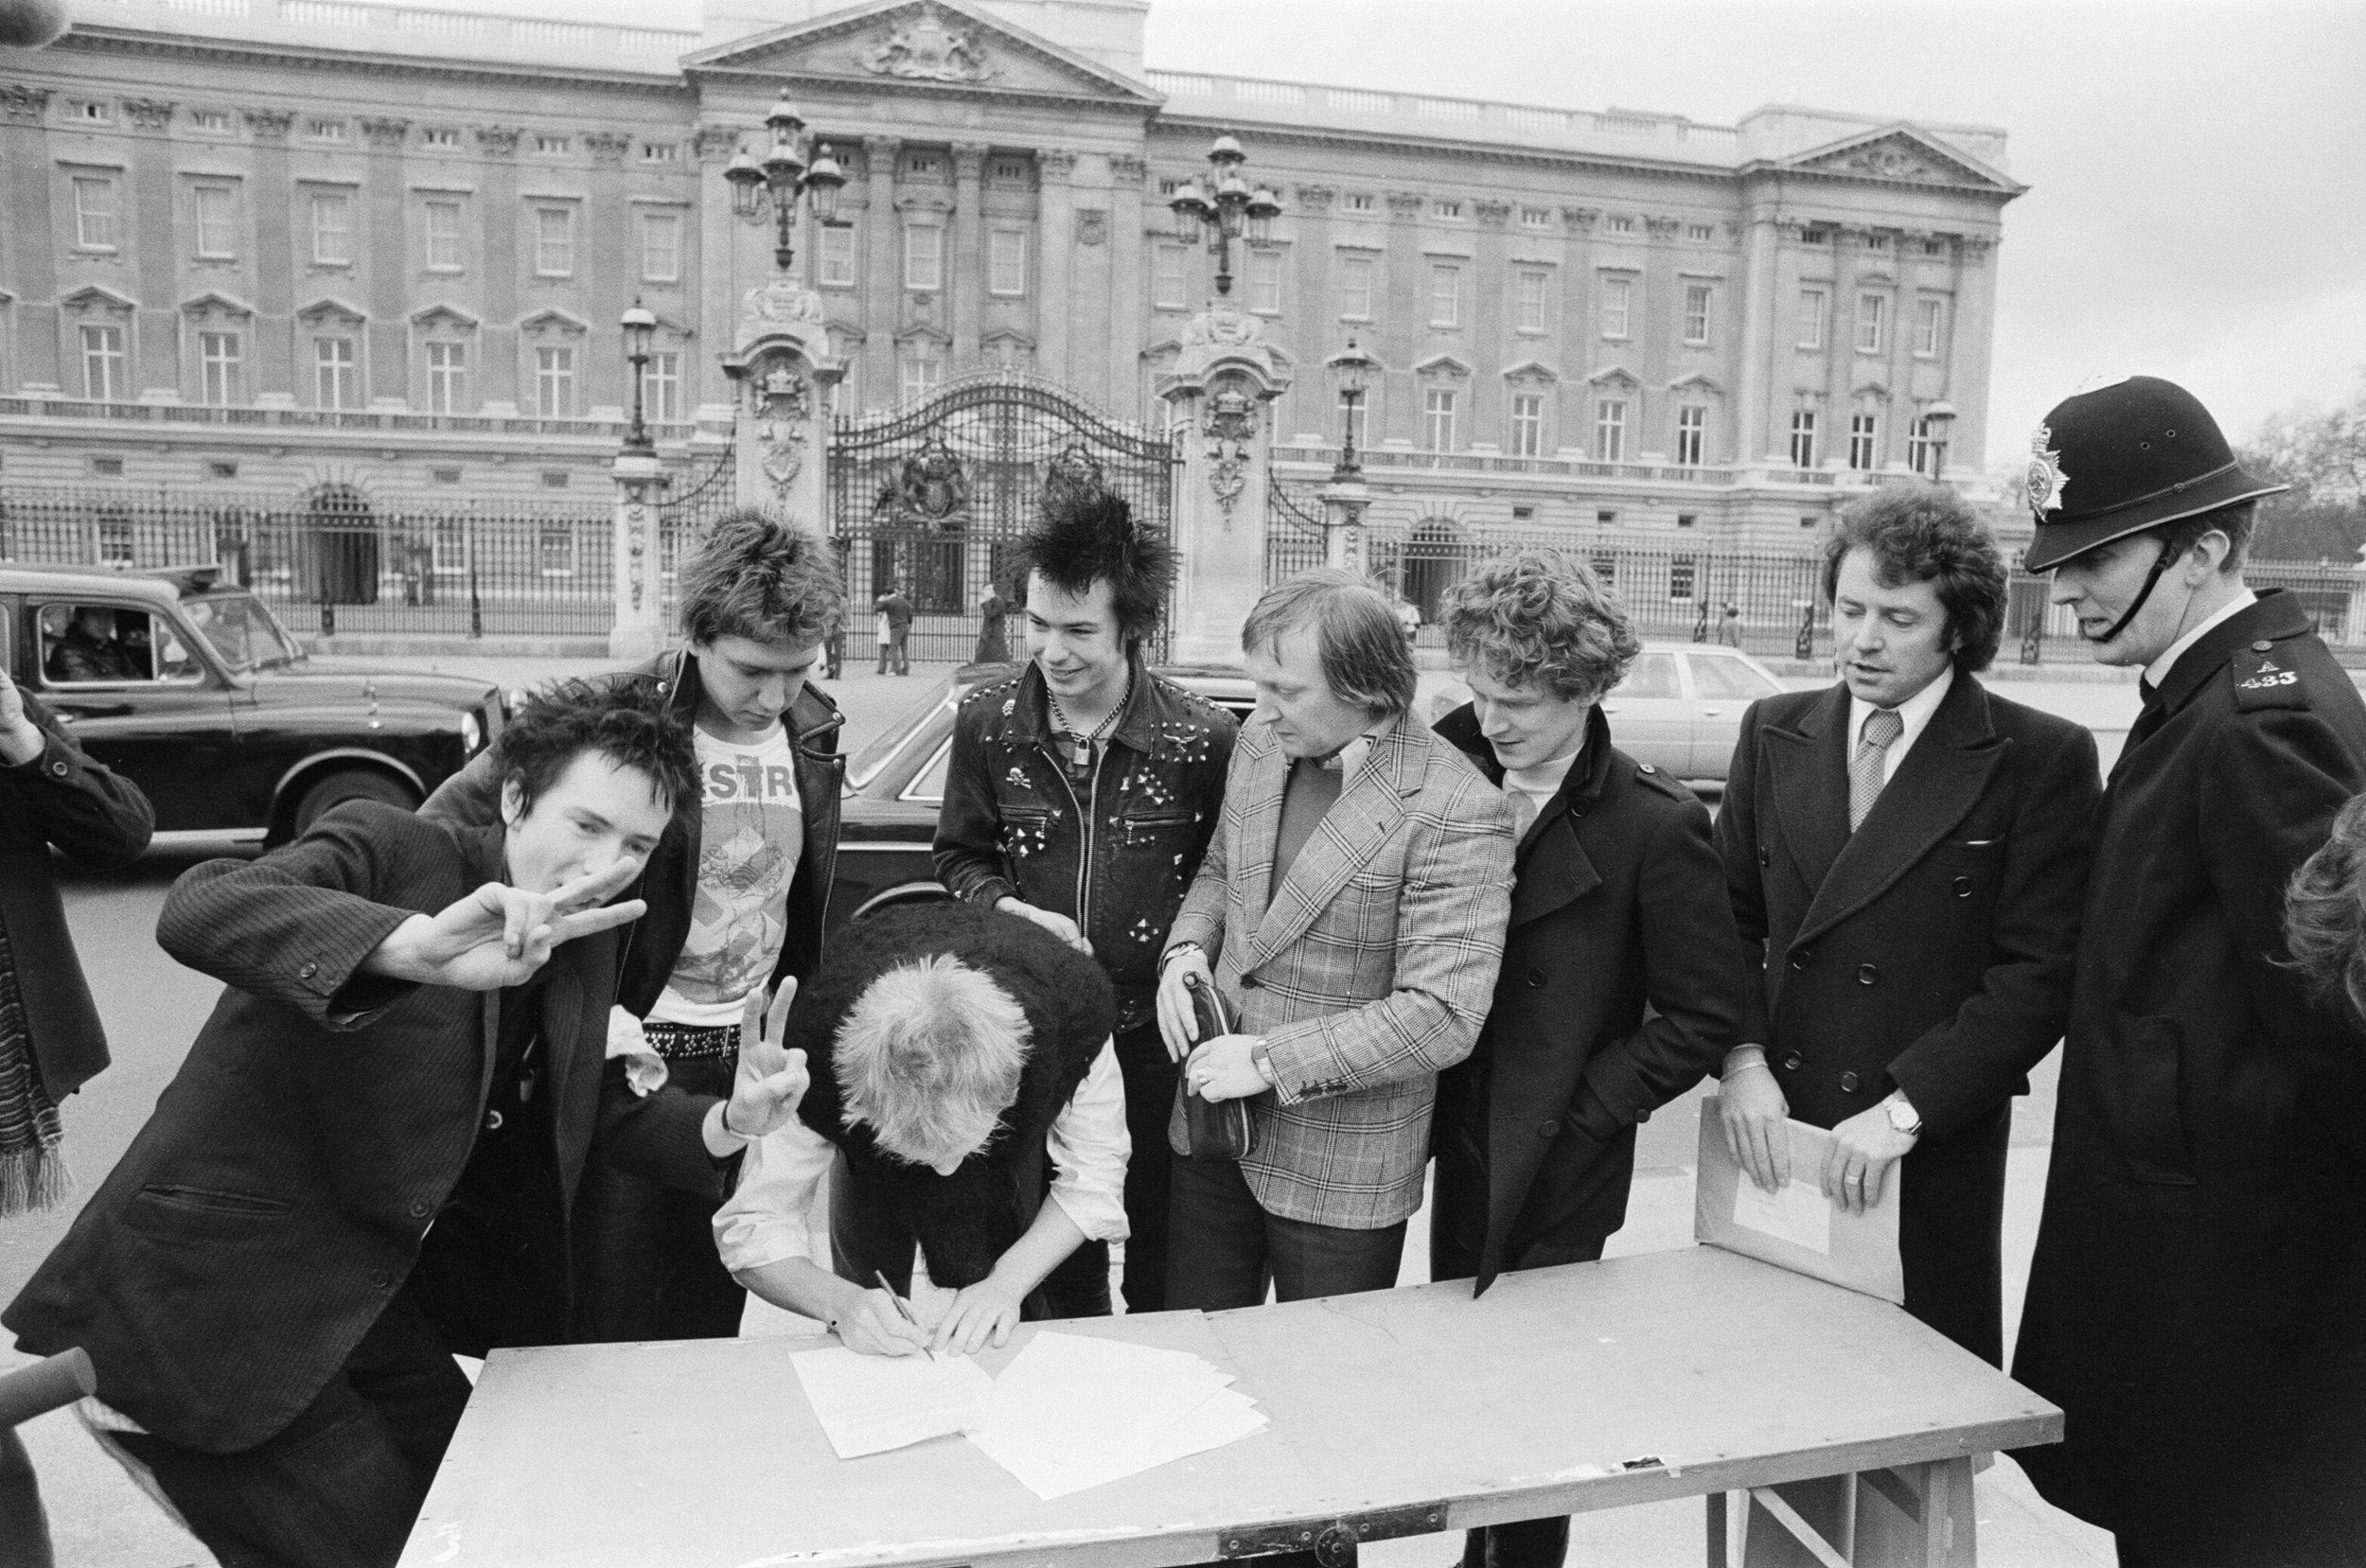 The Sex Pistols contract signing to A&M in front of Buckingham Palace. L to R: Johnny Rotten, Steve Jones, Paul Cook (signing), and Sid Vicious. Malcolm McLaren is third from right.